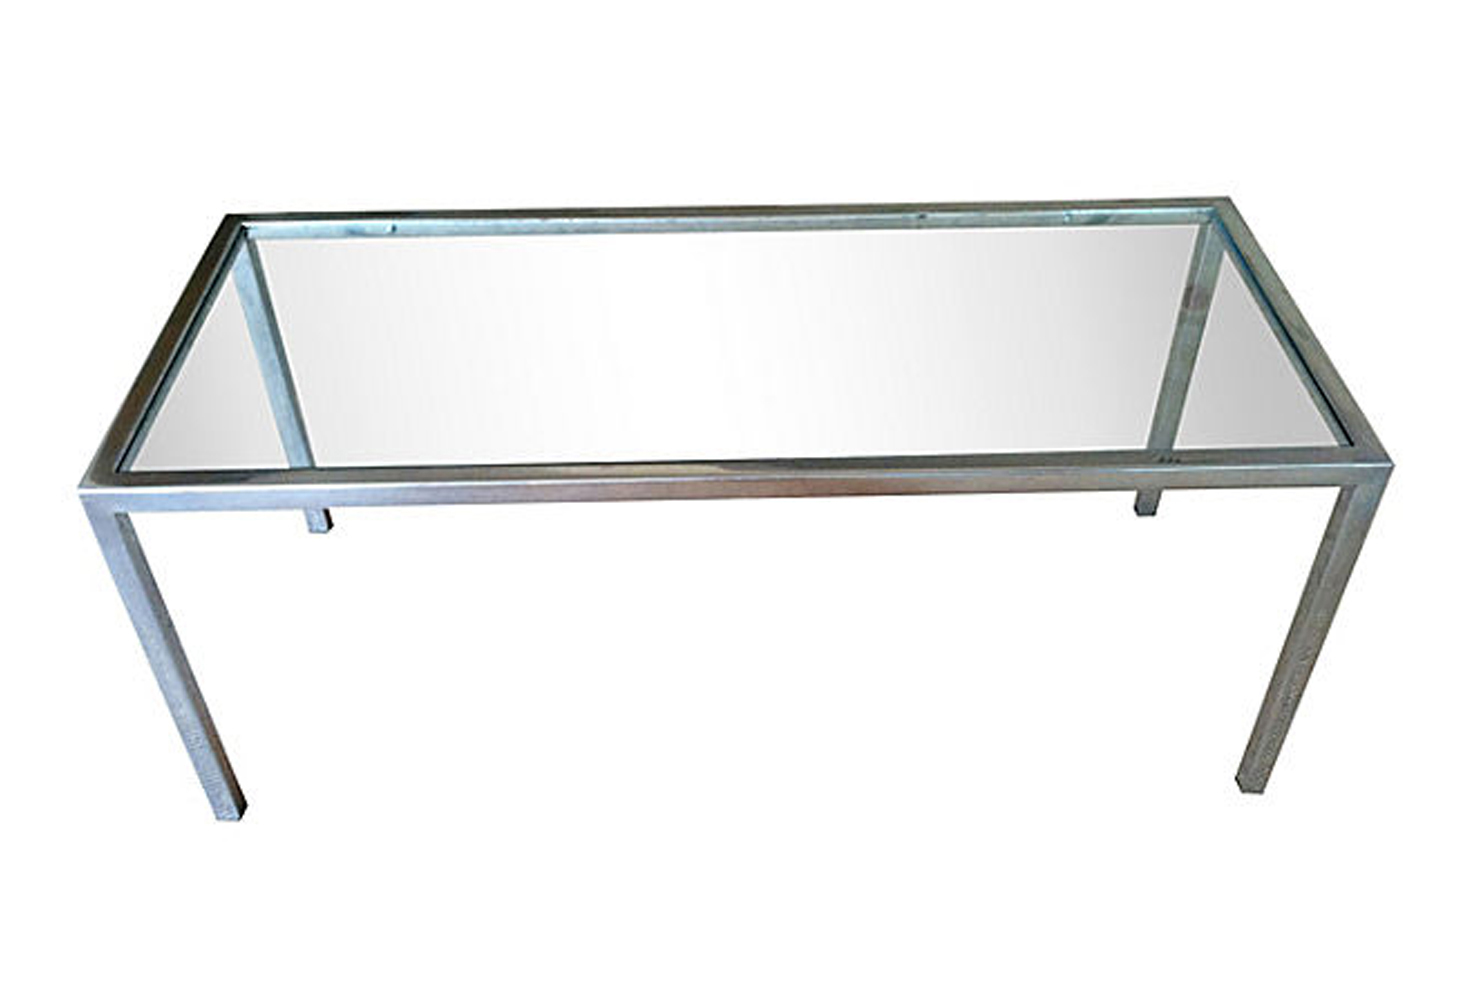 Chrome-Glass-Coffee-Table-Interesting-glass-coffee-table-can-be-of-unusual-style-Unique-and-Functional-Shower-Bench-Designs (Image 4 of 10)